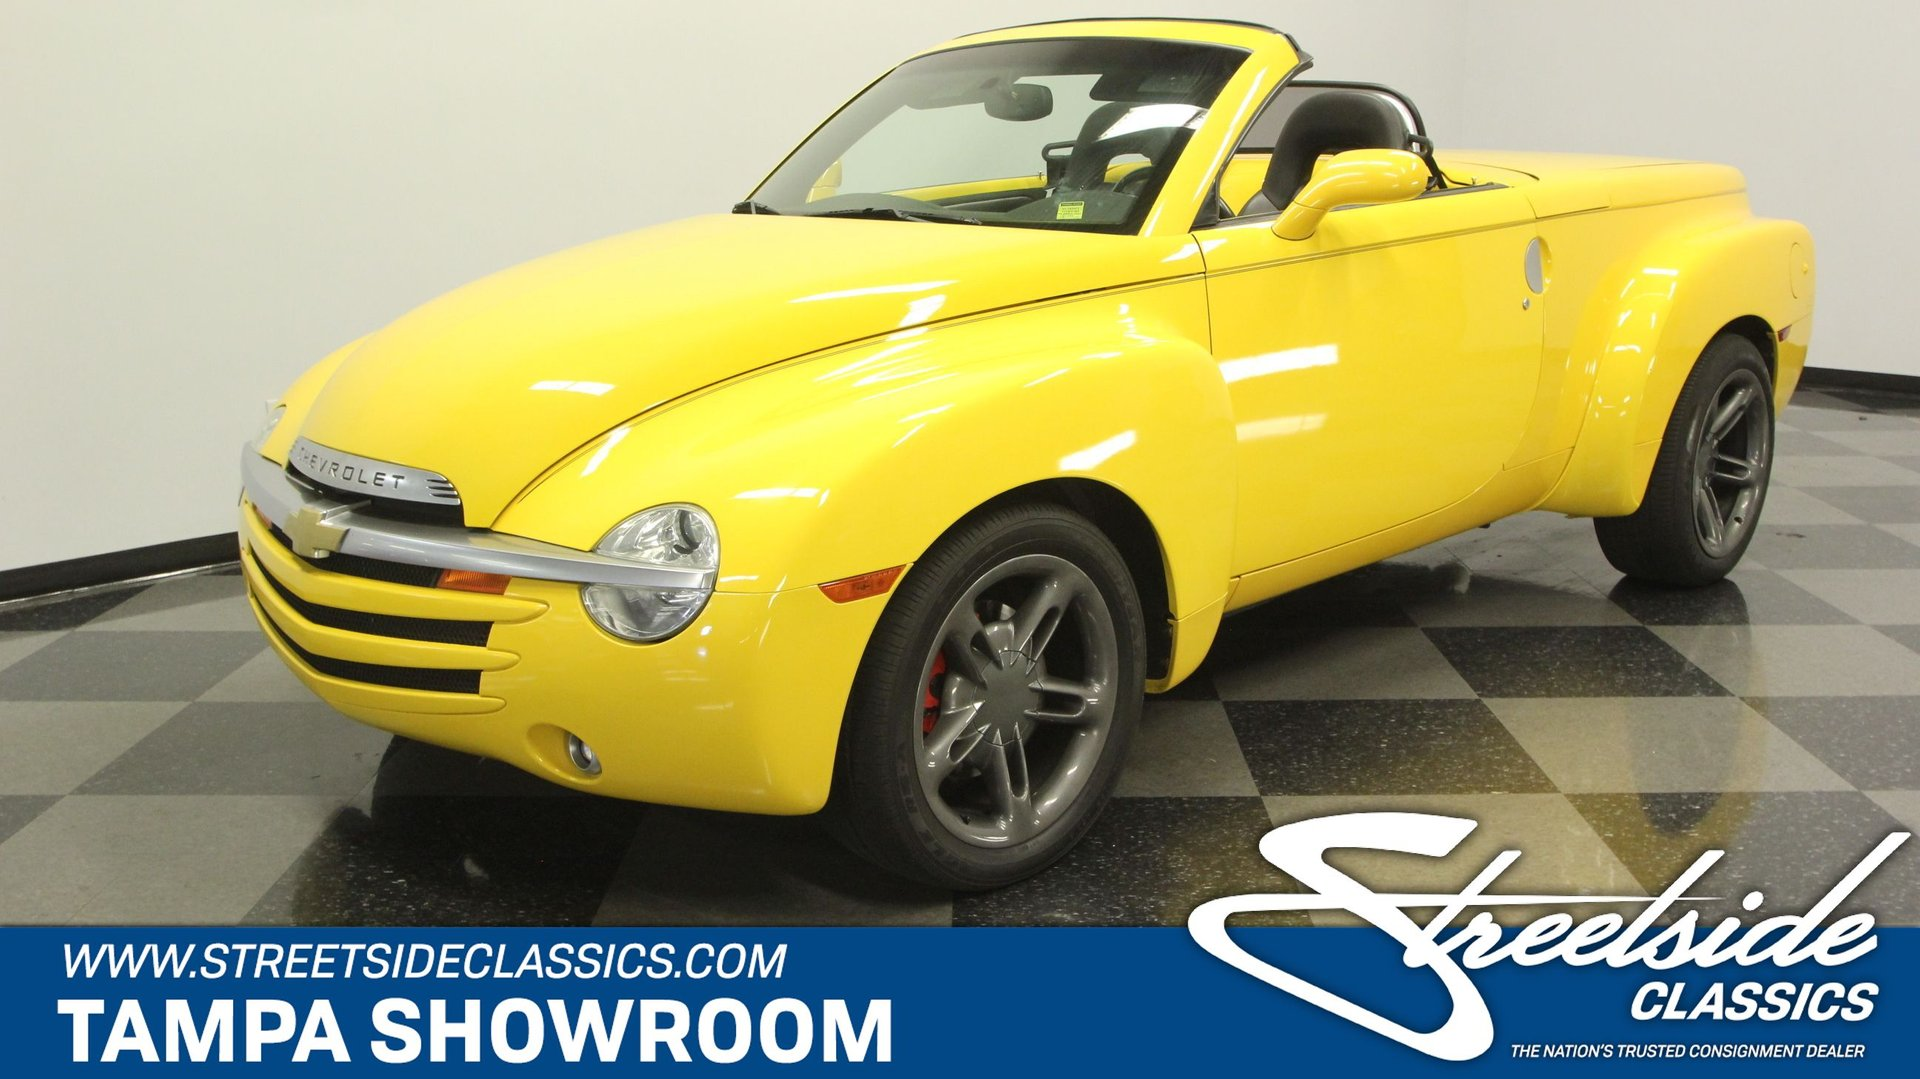 2005 Chevrolet Ssr 6 Speed For Sale 170583 Motorious